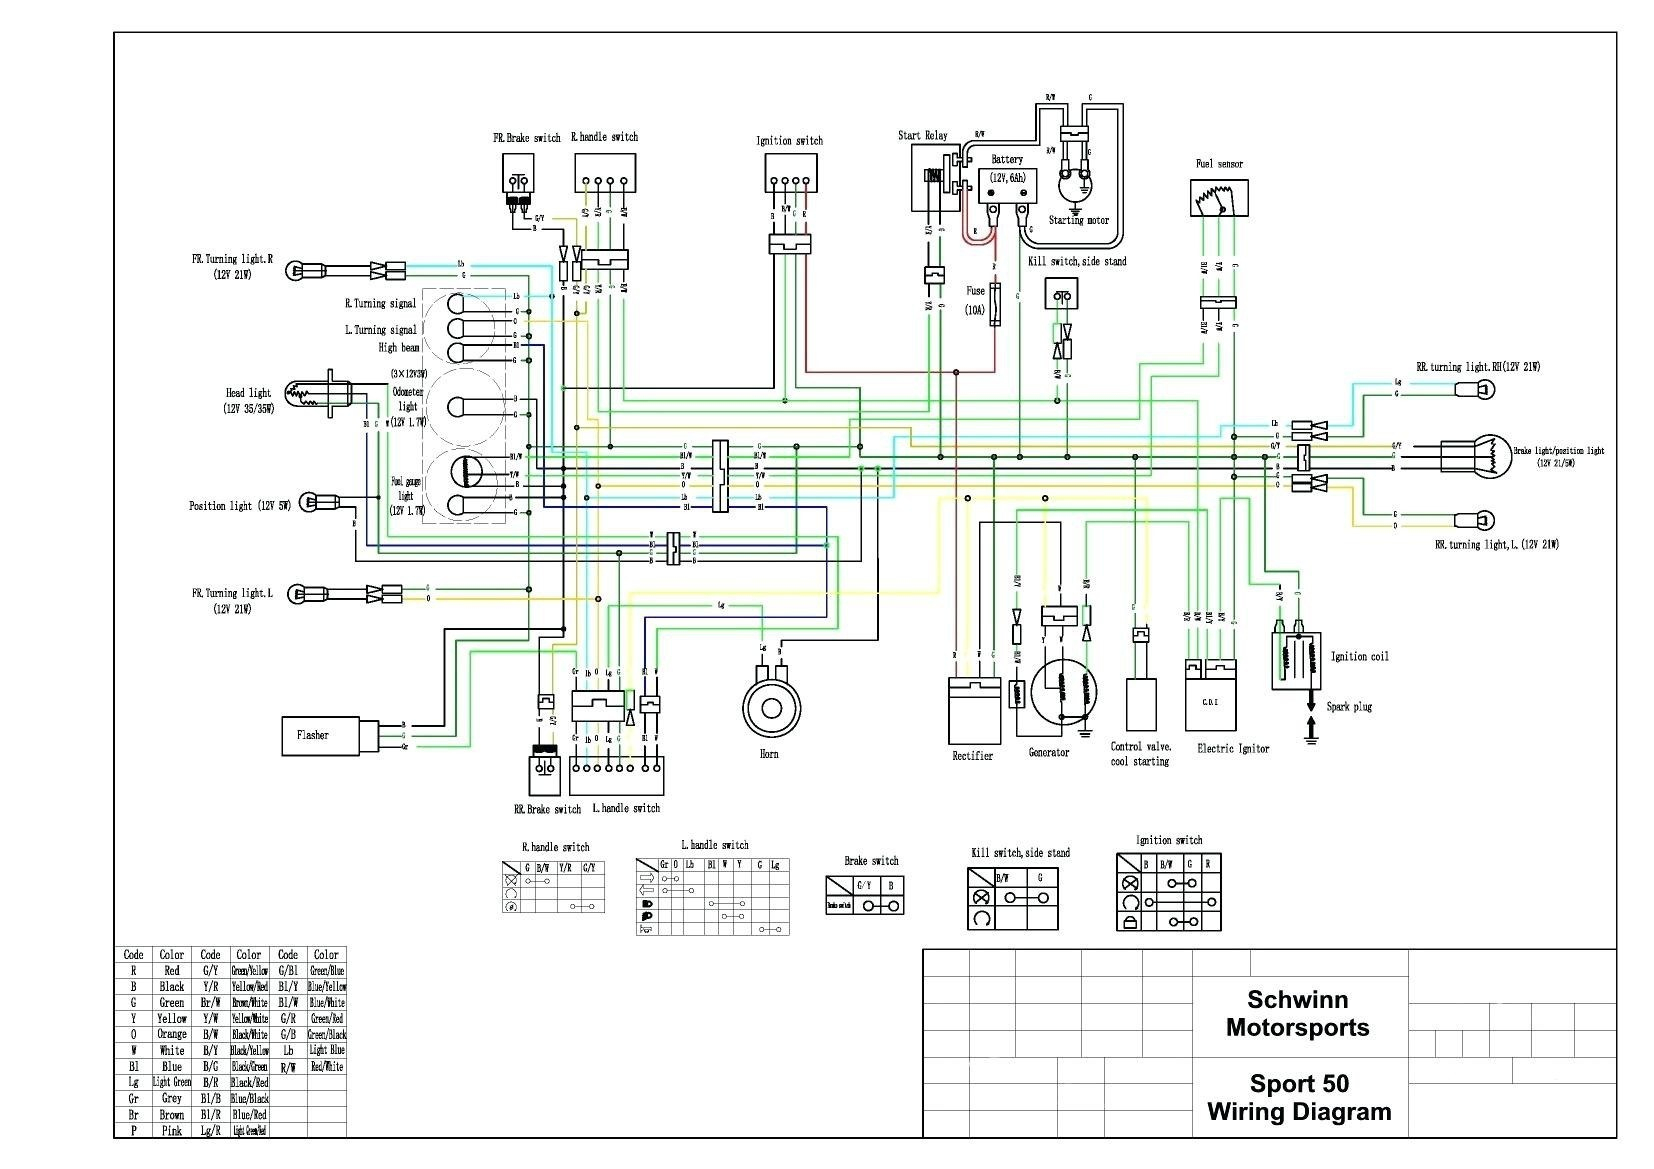 Wiring Diagram For Tao Tao 110Cc 4 Wheeler | Wiring Diagram - Chinese 4 Wheeler Wiring Diagram